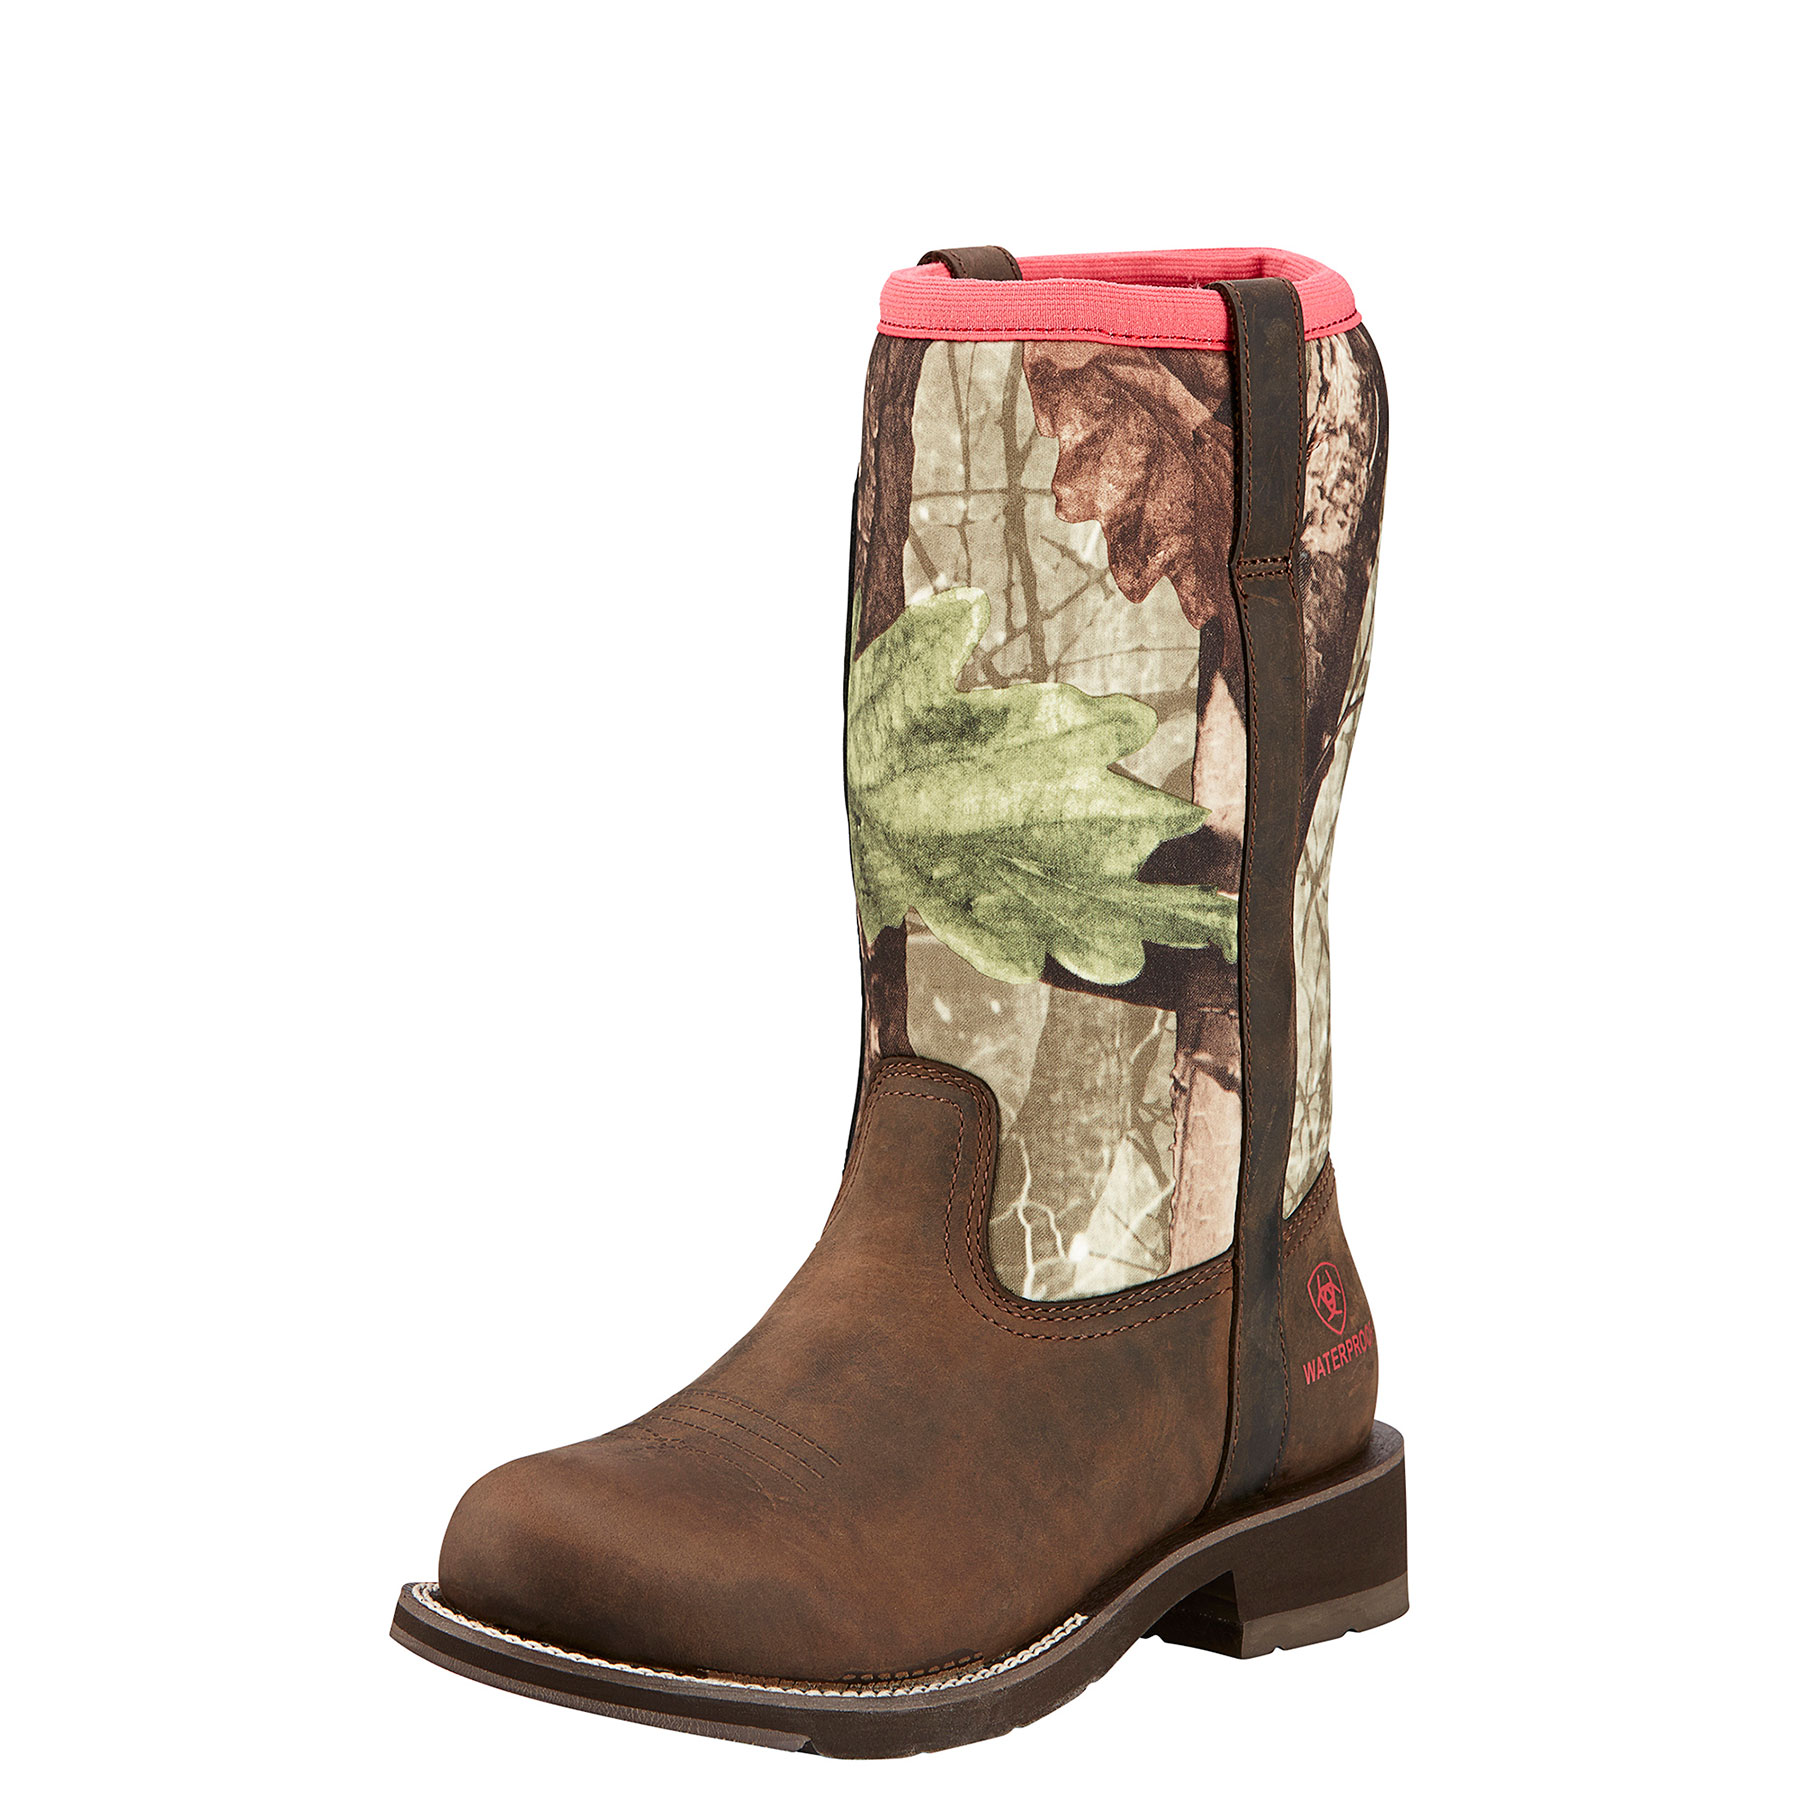 Pungo Ridge Ariat Fatbaby All Weather Palm Brown Camo